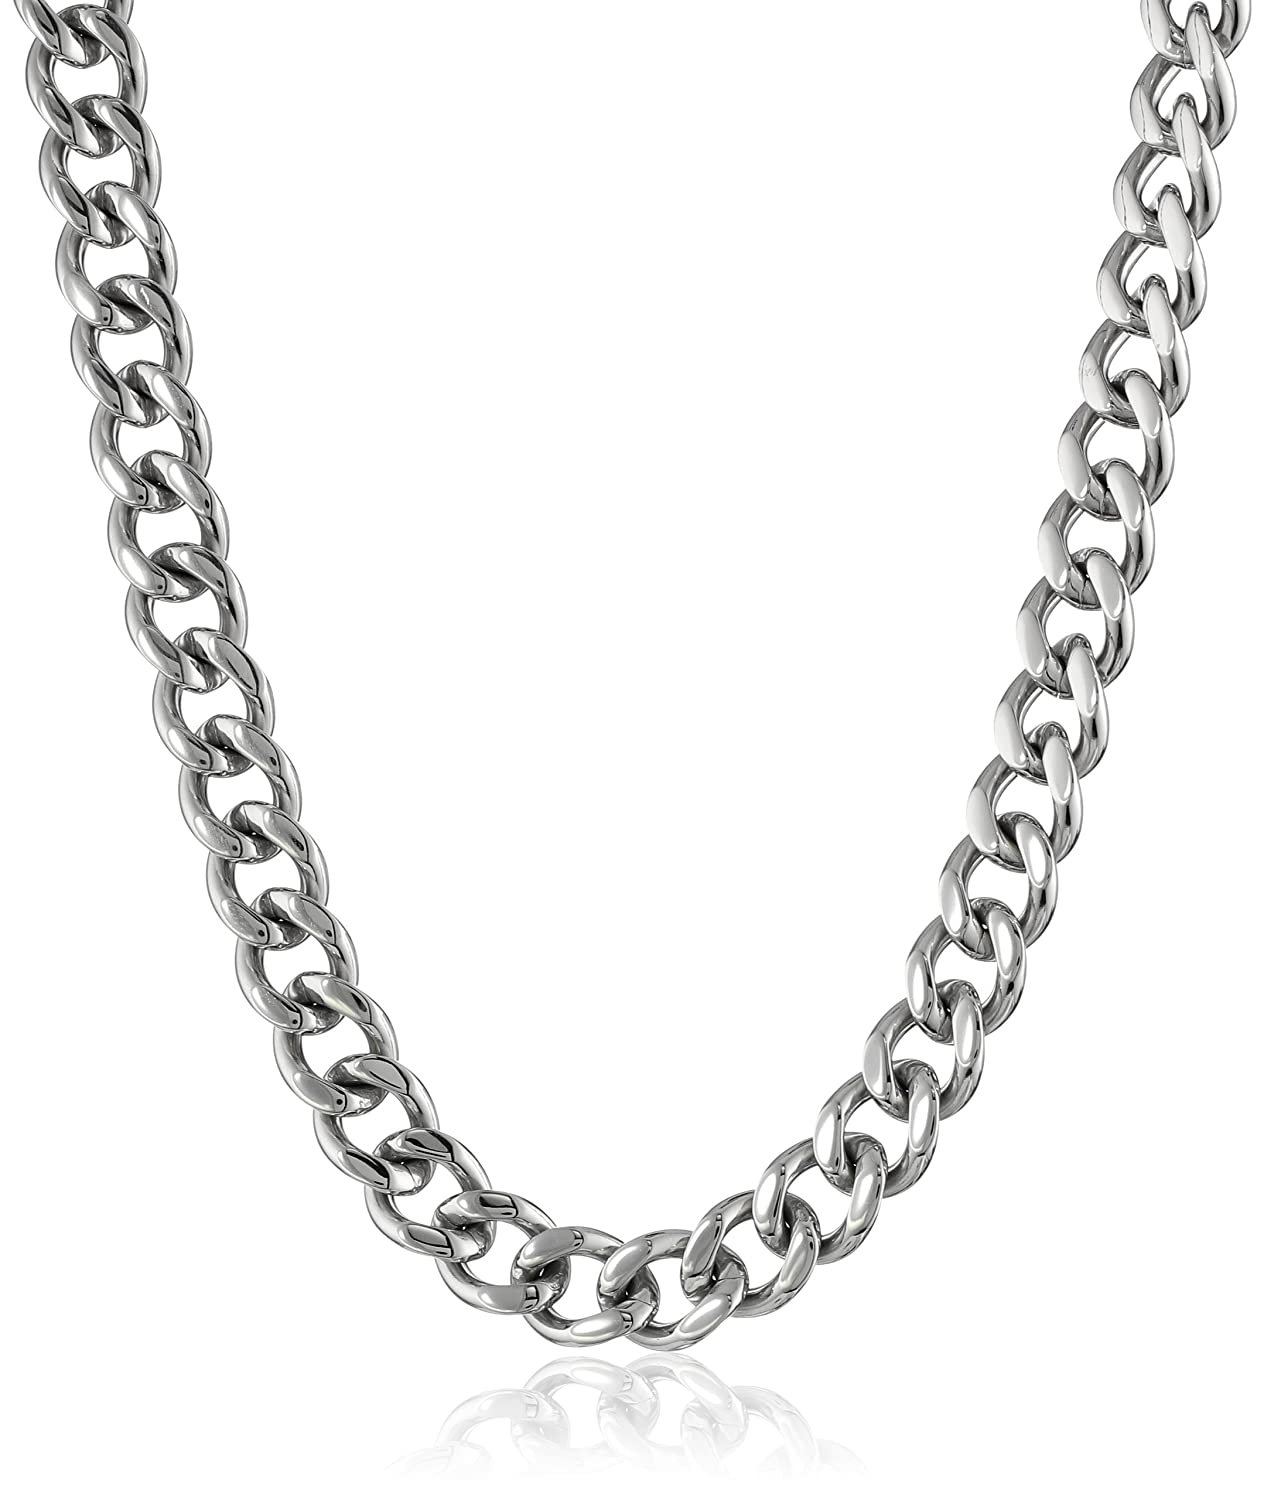 Mens stainless steel curb chain necklace 20 amazon mozeypictures Images